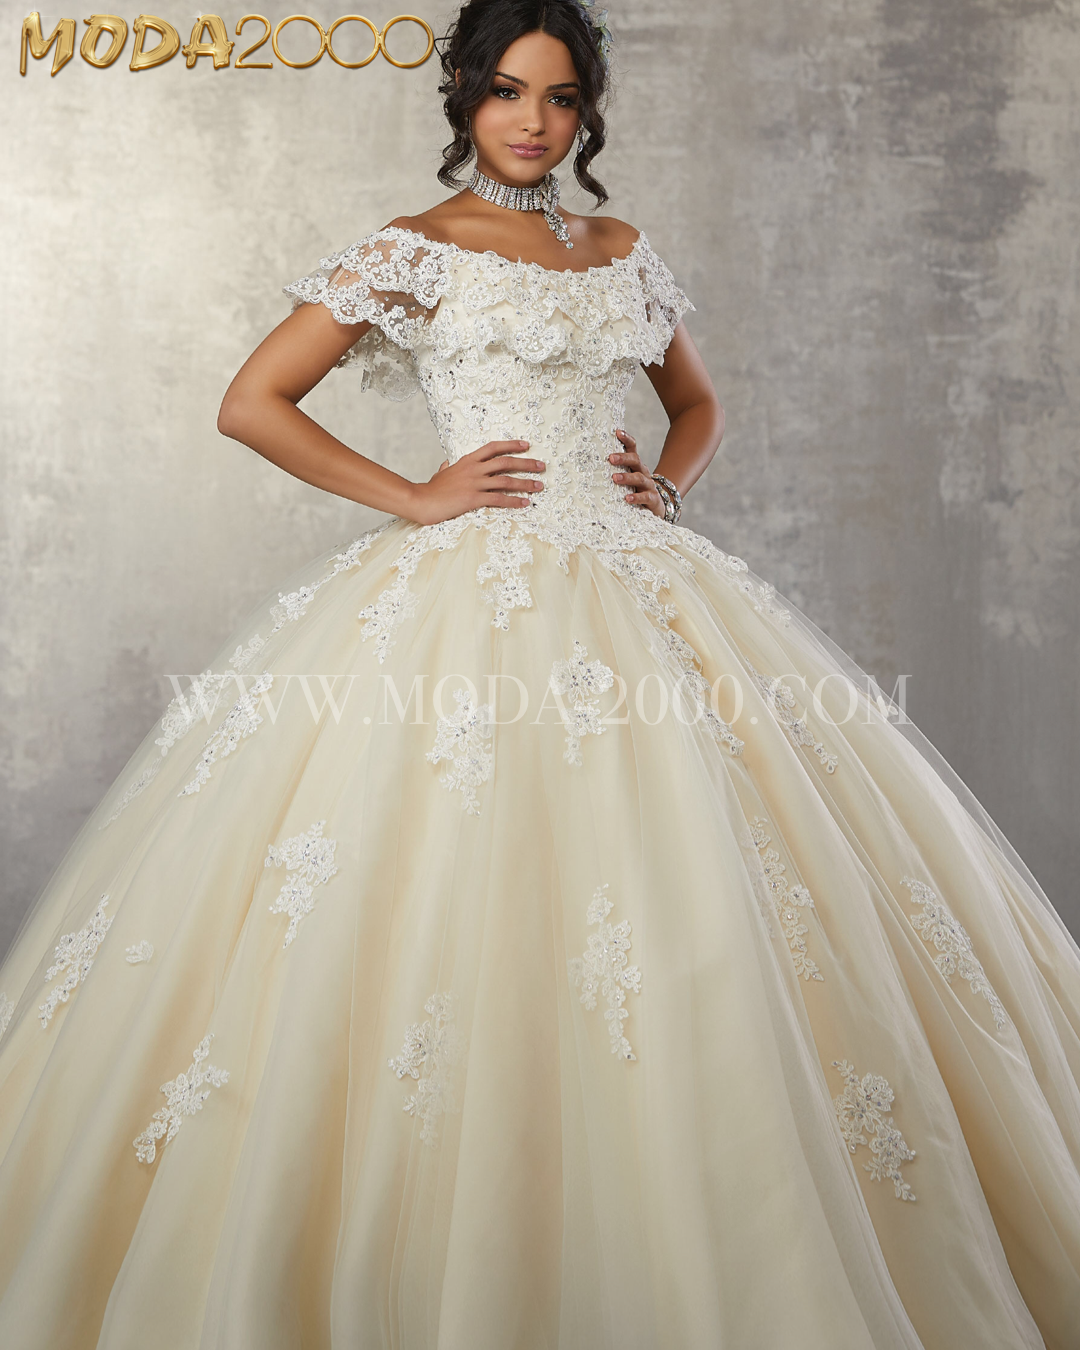 e792c1a20d7 Off the shoulder laced quinceañera dress. Simple charro quince dress✨  Available at Moda 2000! Instagram  moda2000inc